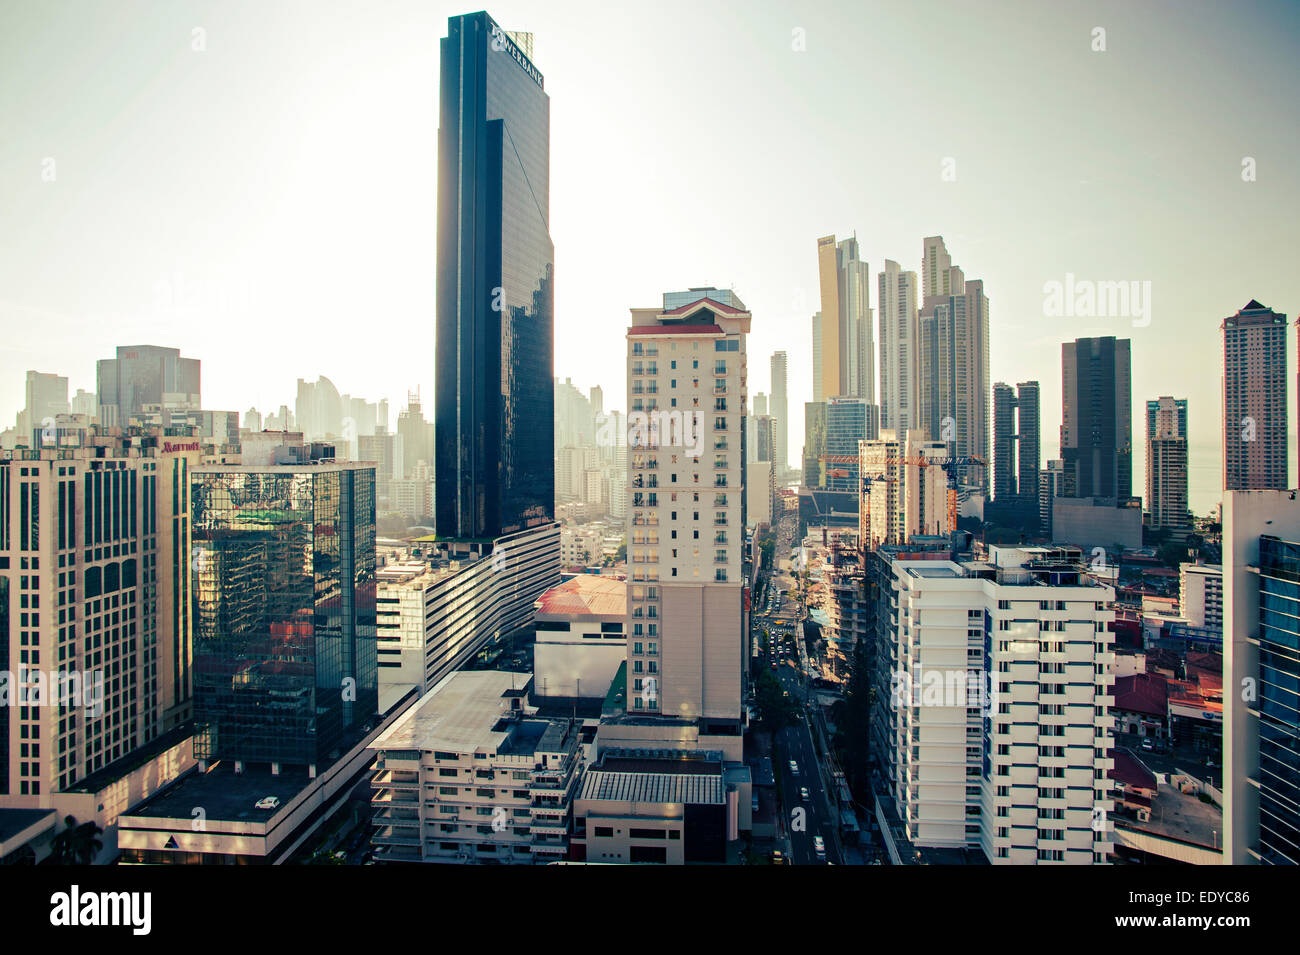 Skyline of Panama City, Panama - Stock Image